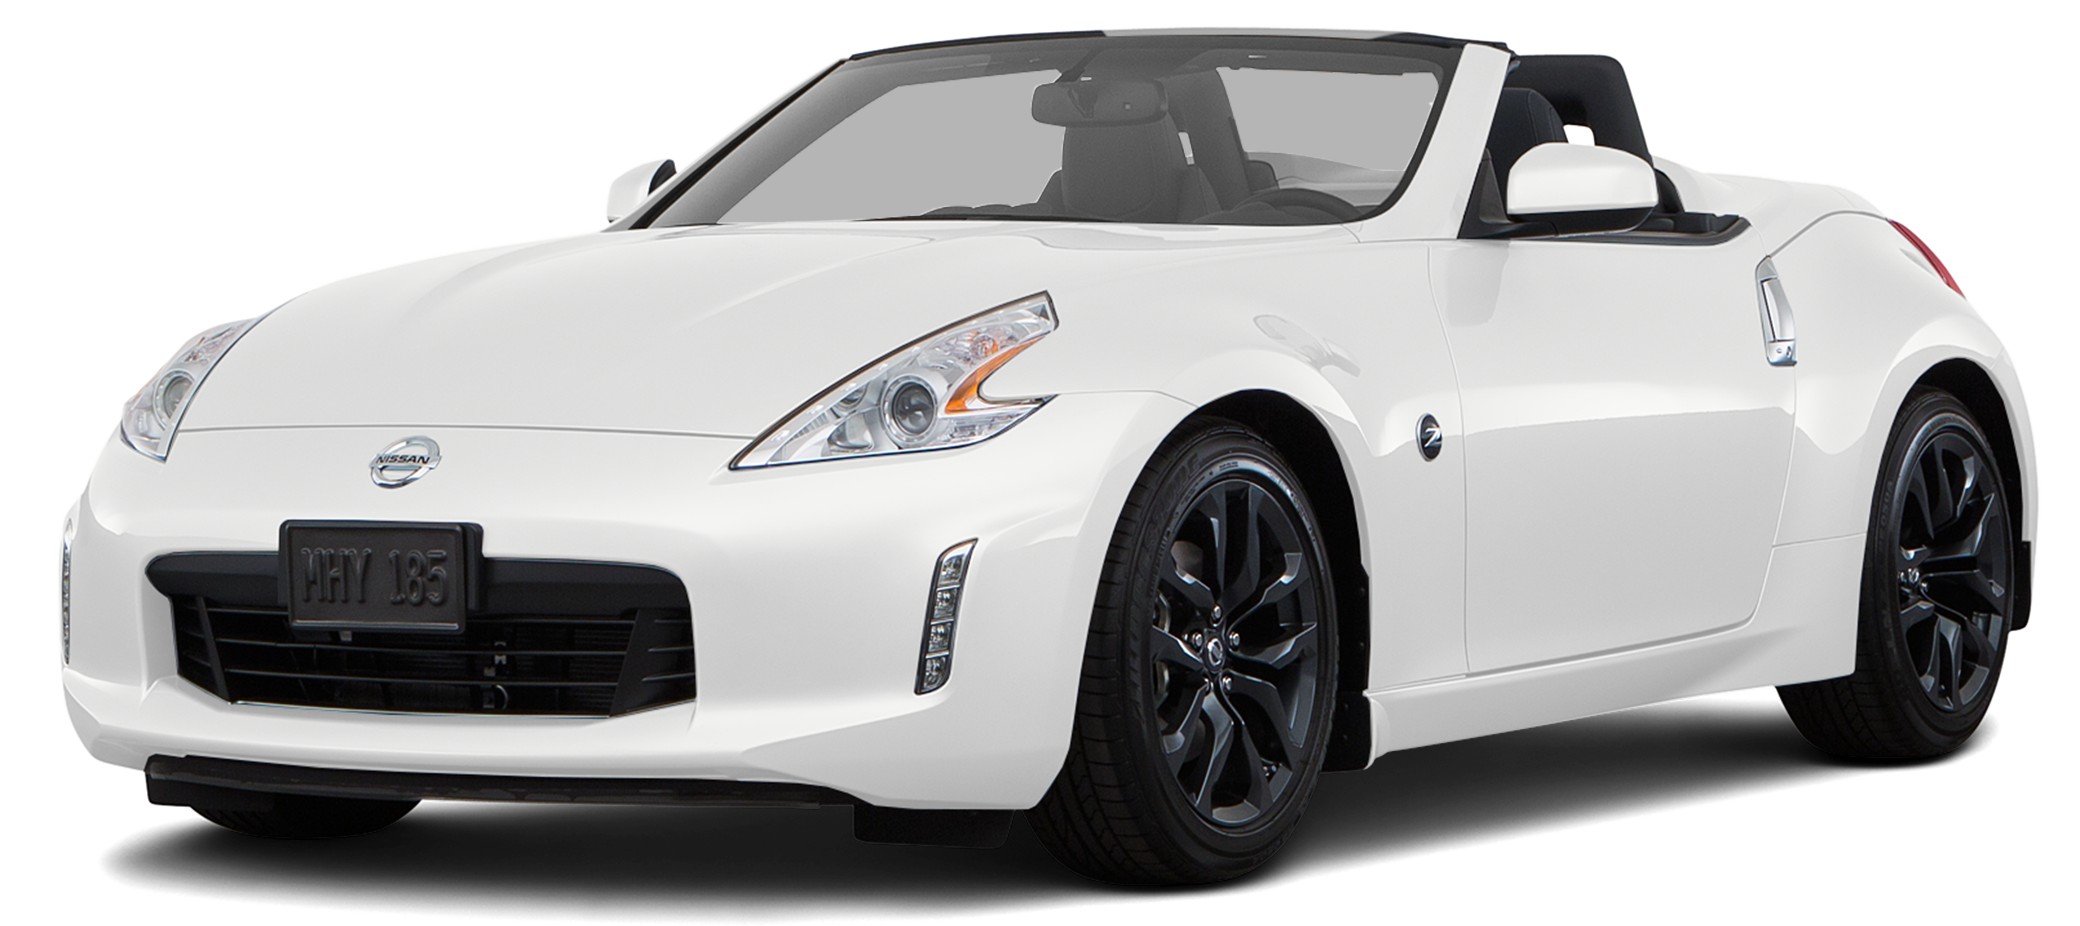 2019 Nissan 370Z Incentives, Specials & Offers in Omaha NE